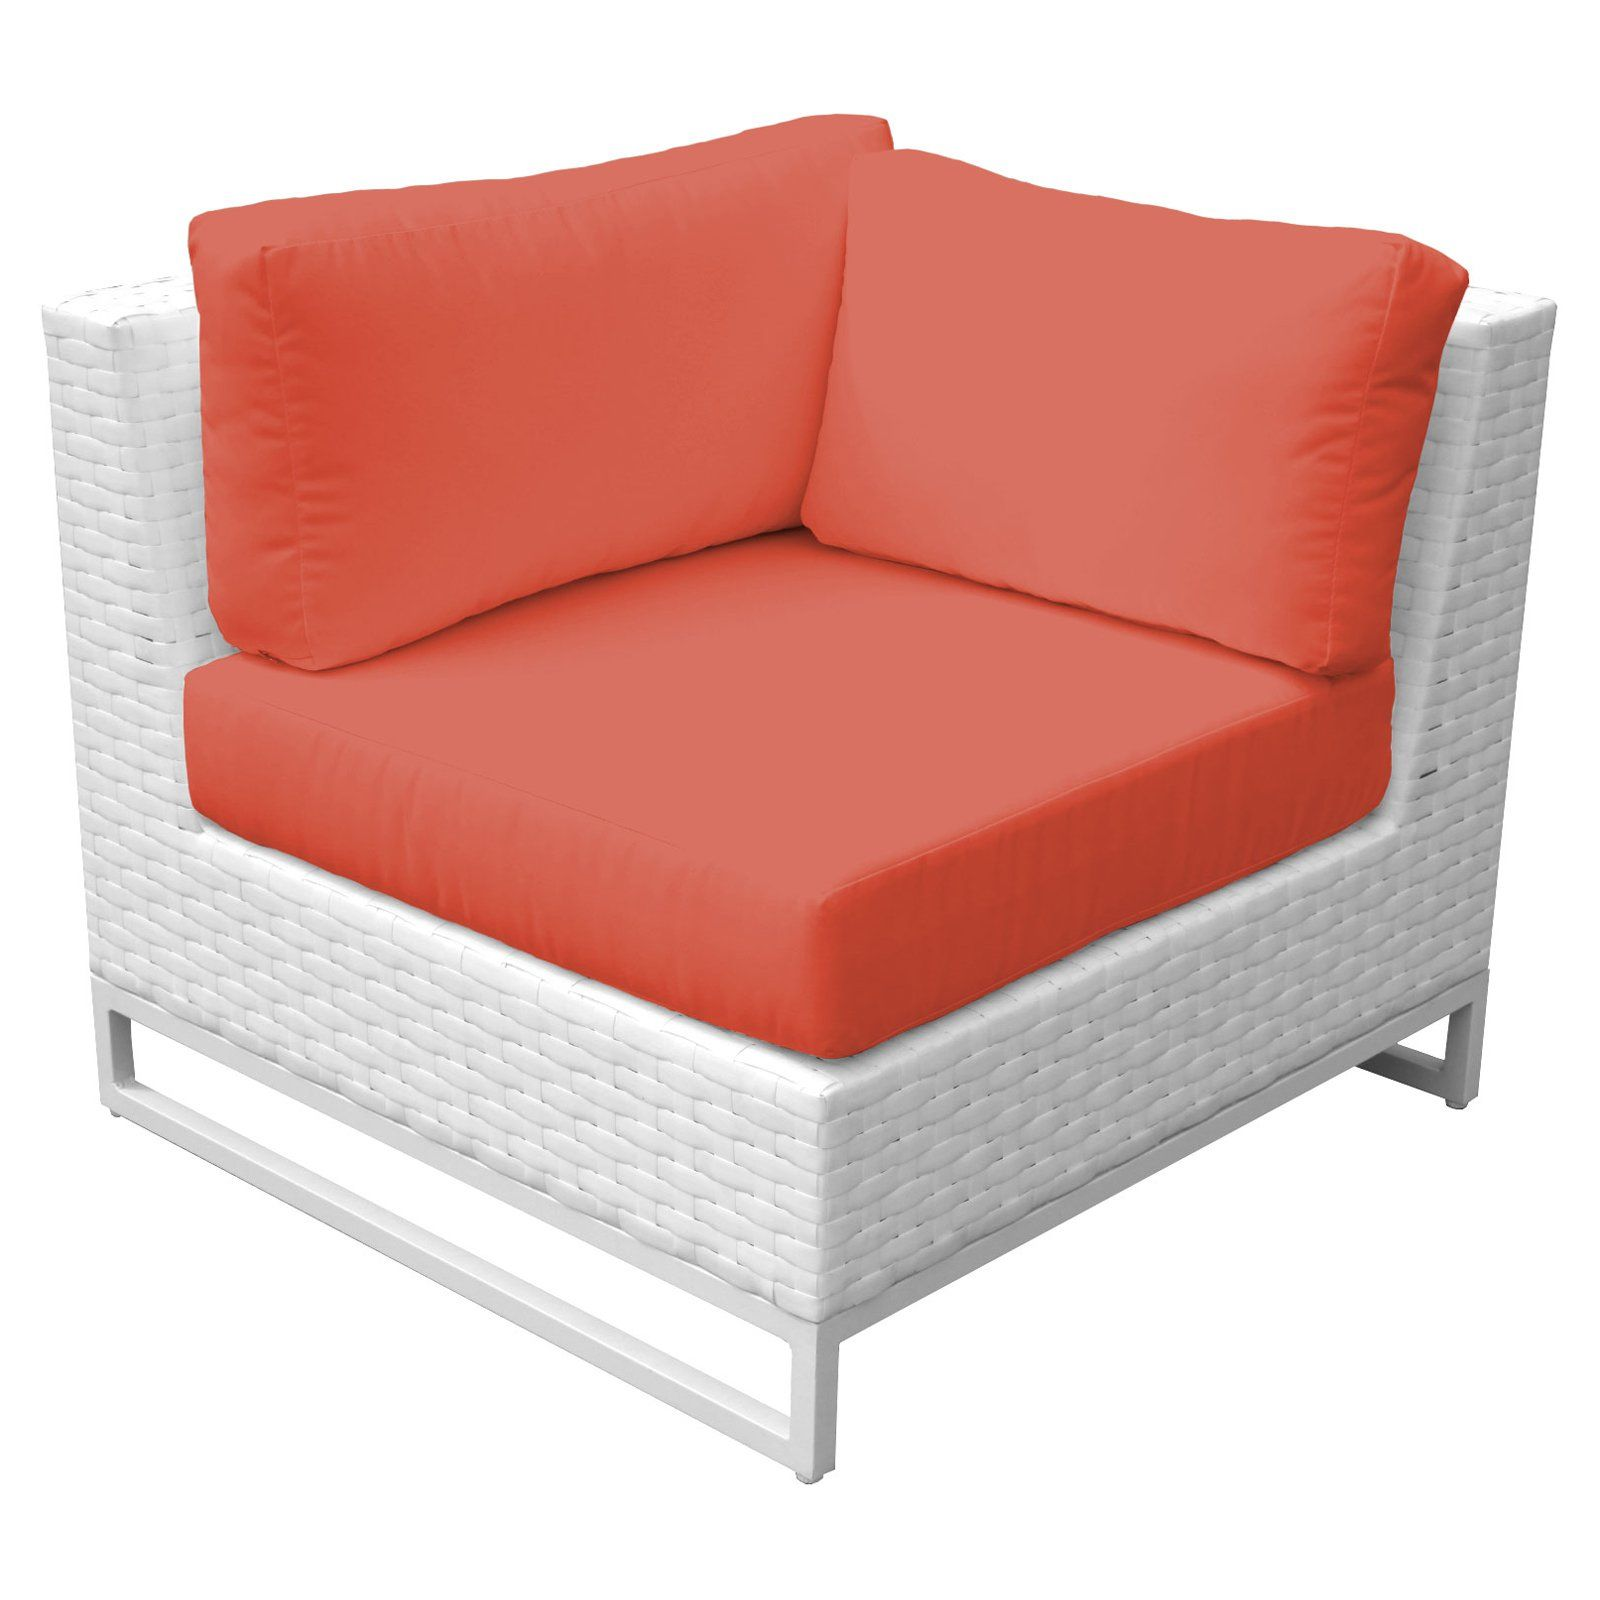 Fabulous Tk Classics Miami Outdoor Corner Sofa Set Of 2 Wheat Caraccident5 Cool Chair Designs And Ideas Caraccident5Info